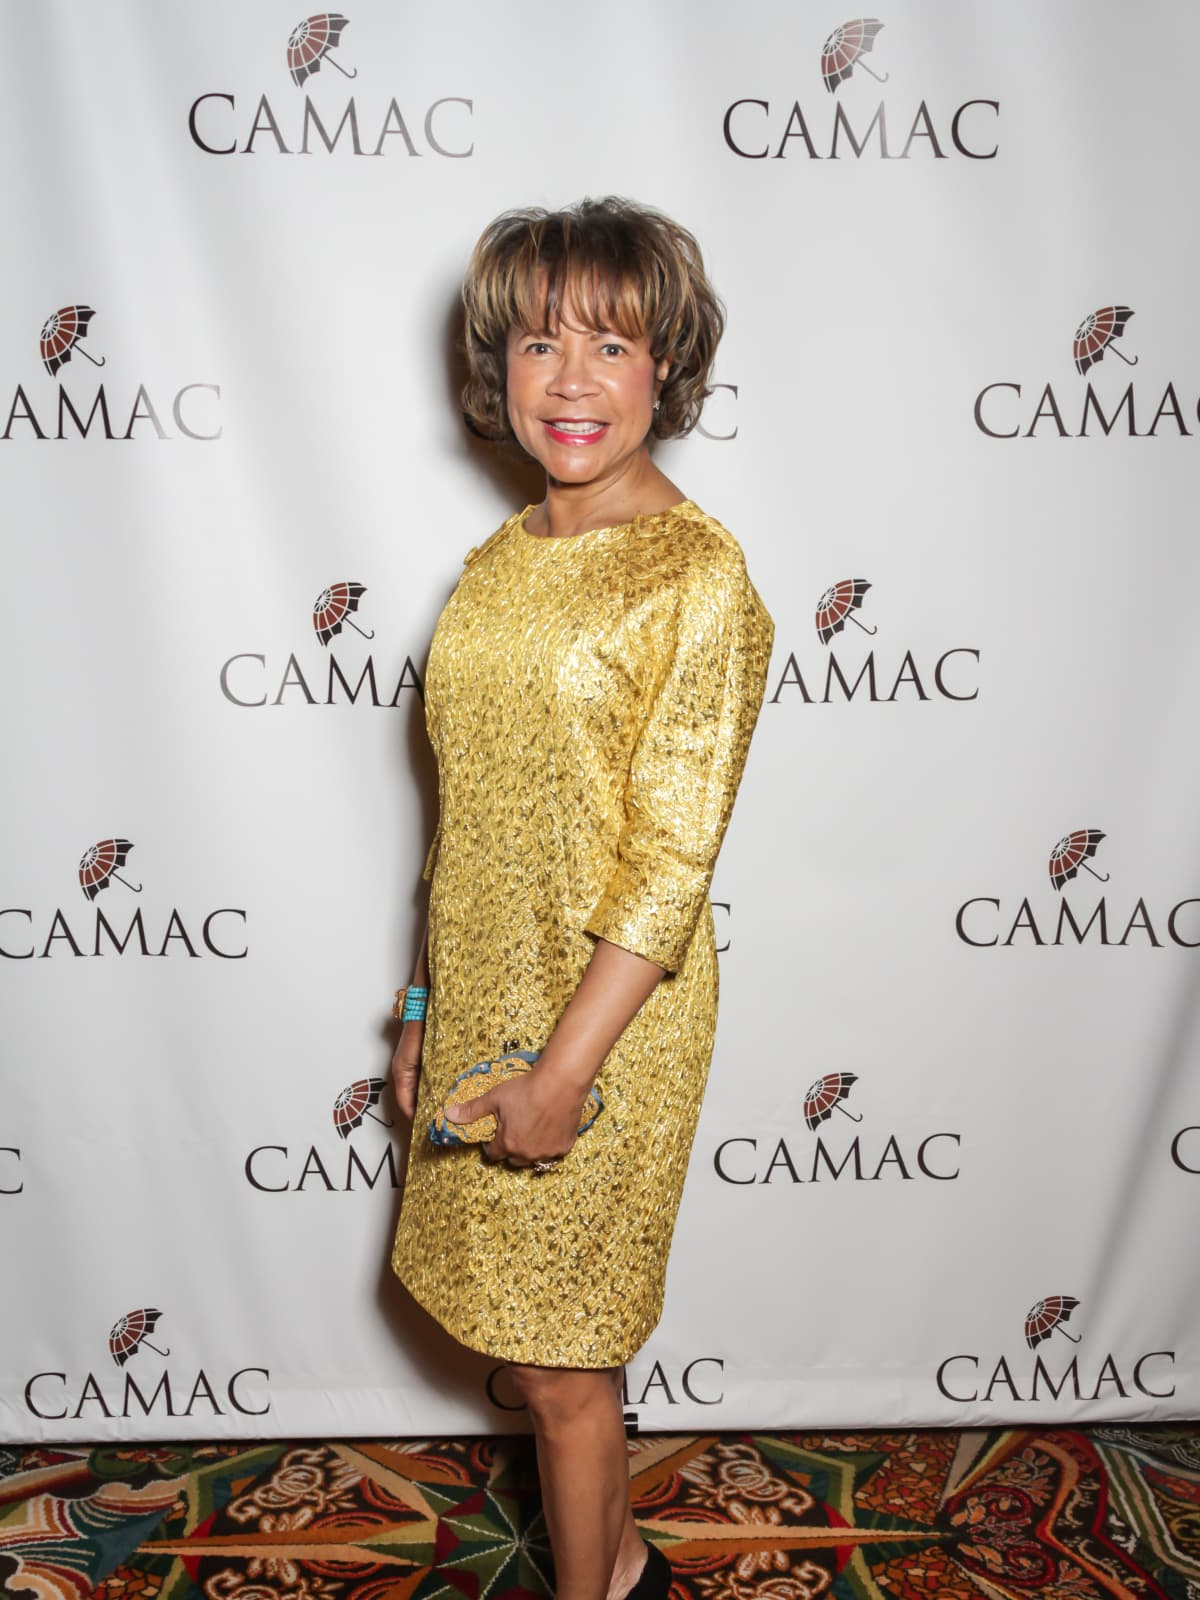 CAMAC 30th anny gala, Jan. 2016, Merele Yarborough